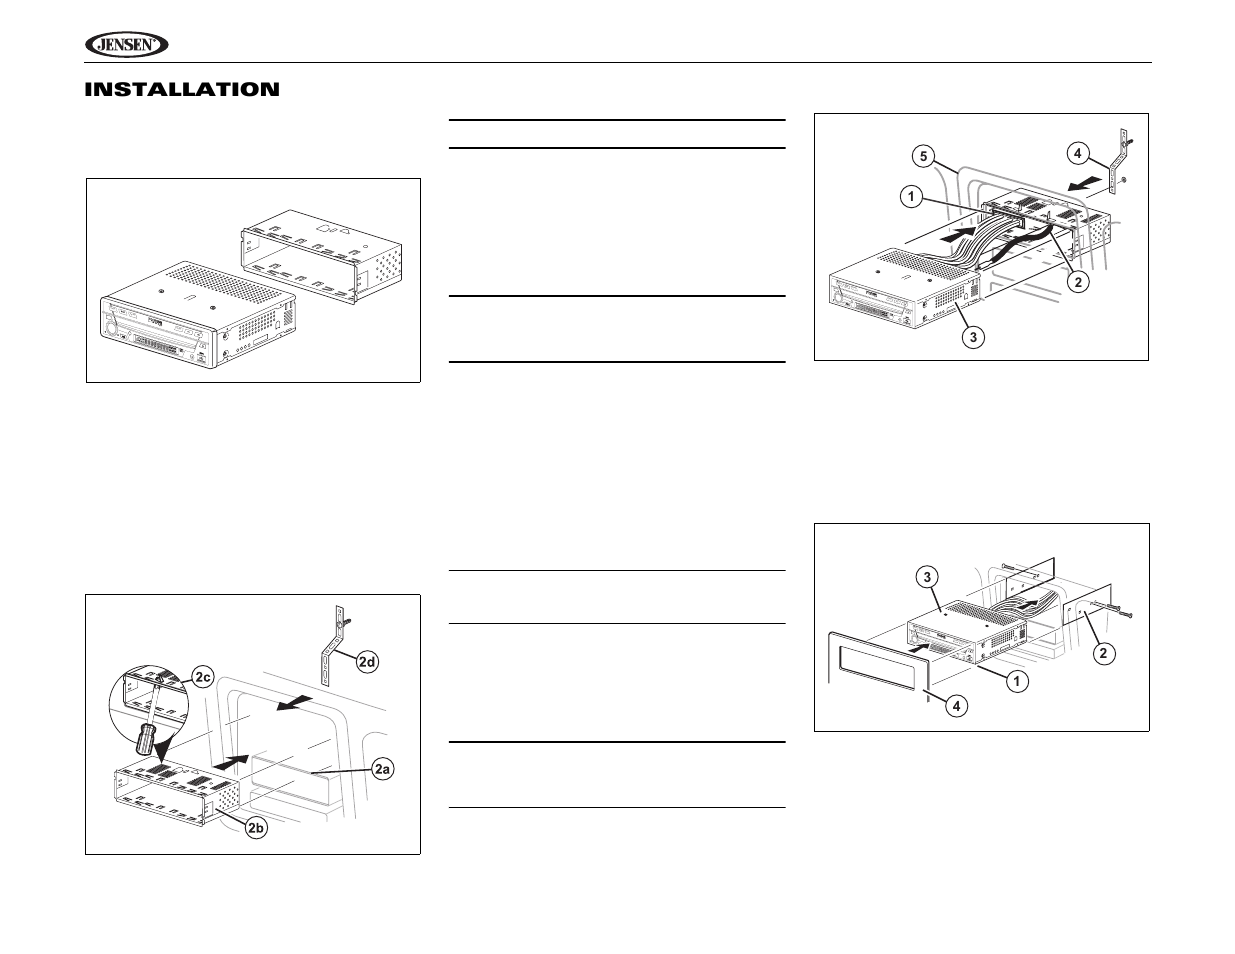 jensen uv9 page8 jensen uv9 wiring diagram audio control wiring diagram \u2022 wiring  at bakdesigns.co